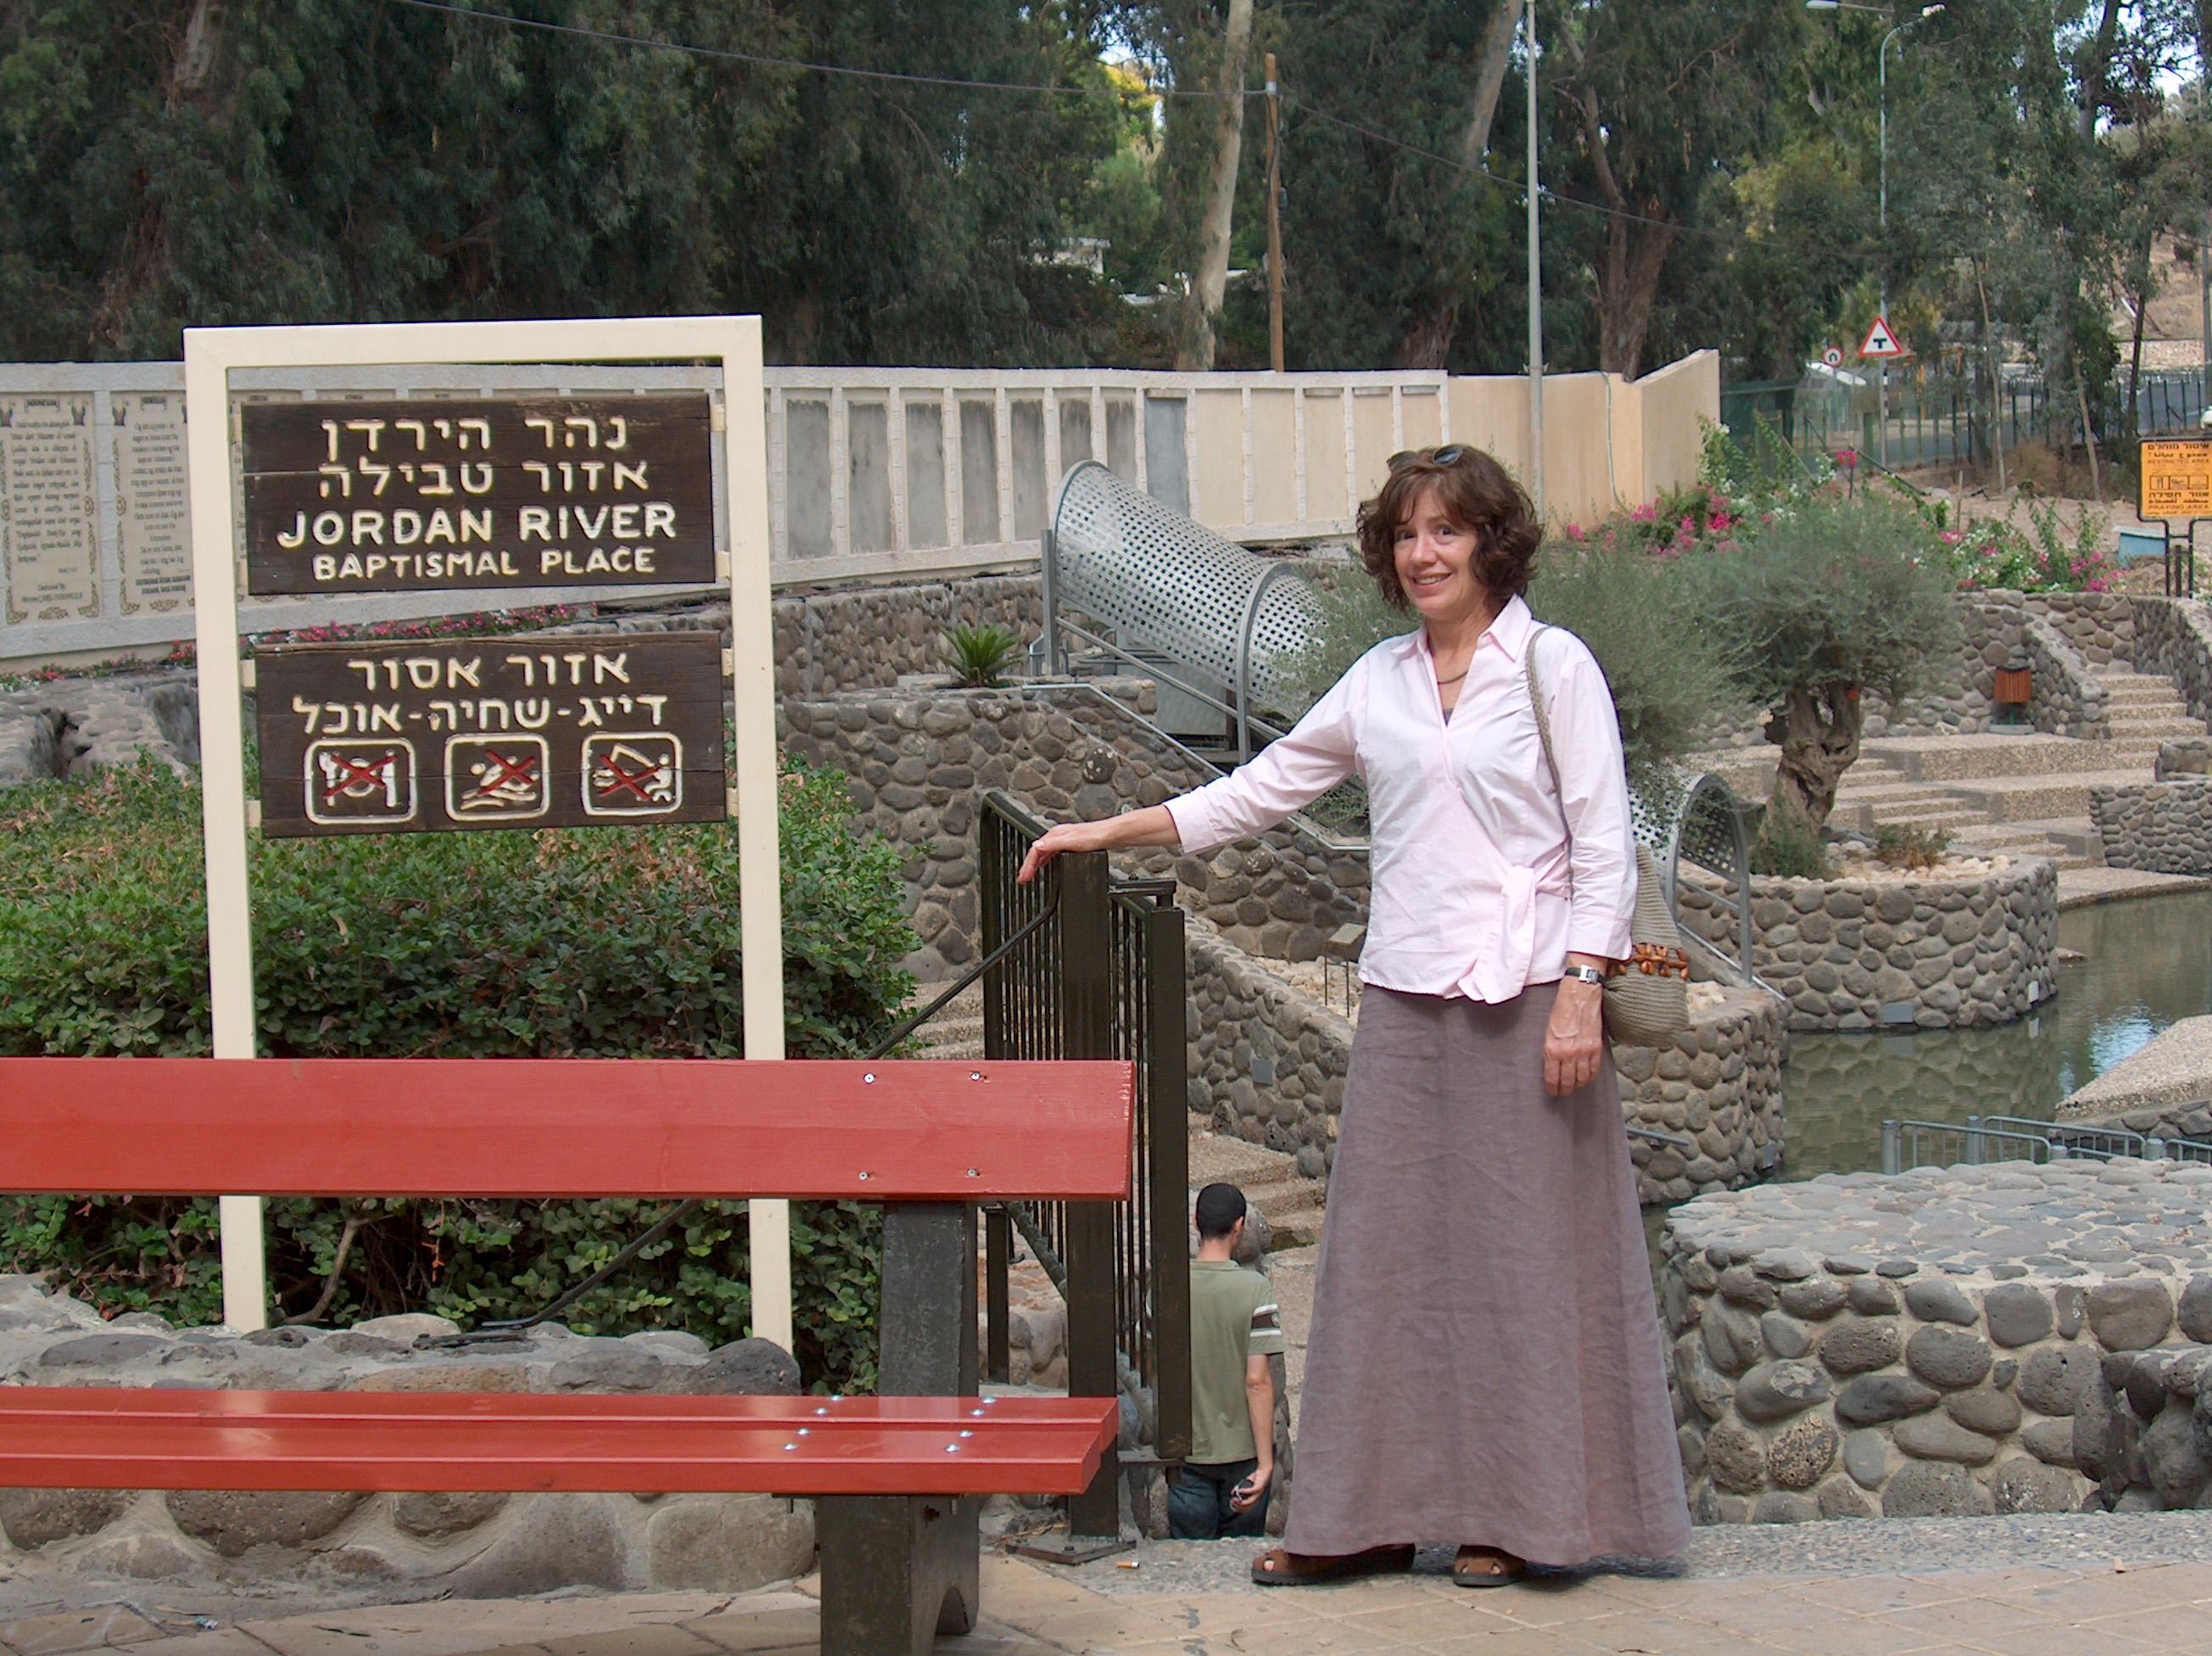 Micheline Lockerd at Jordan River baptismal site.